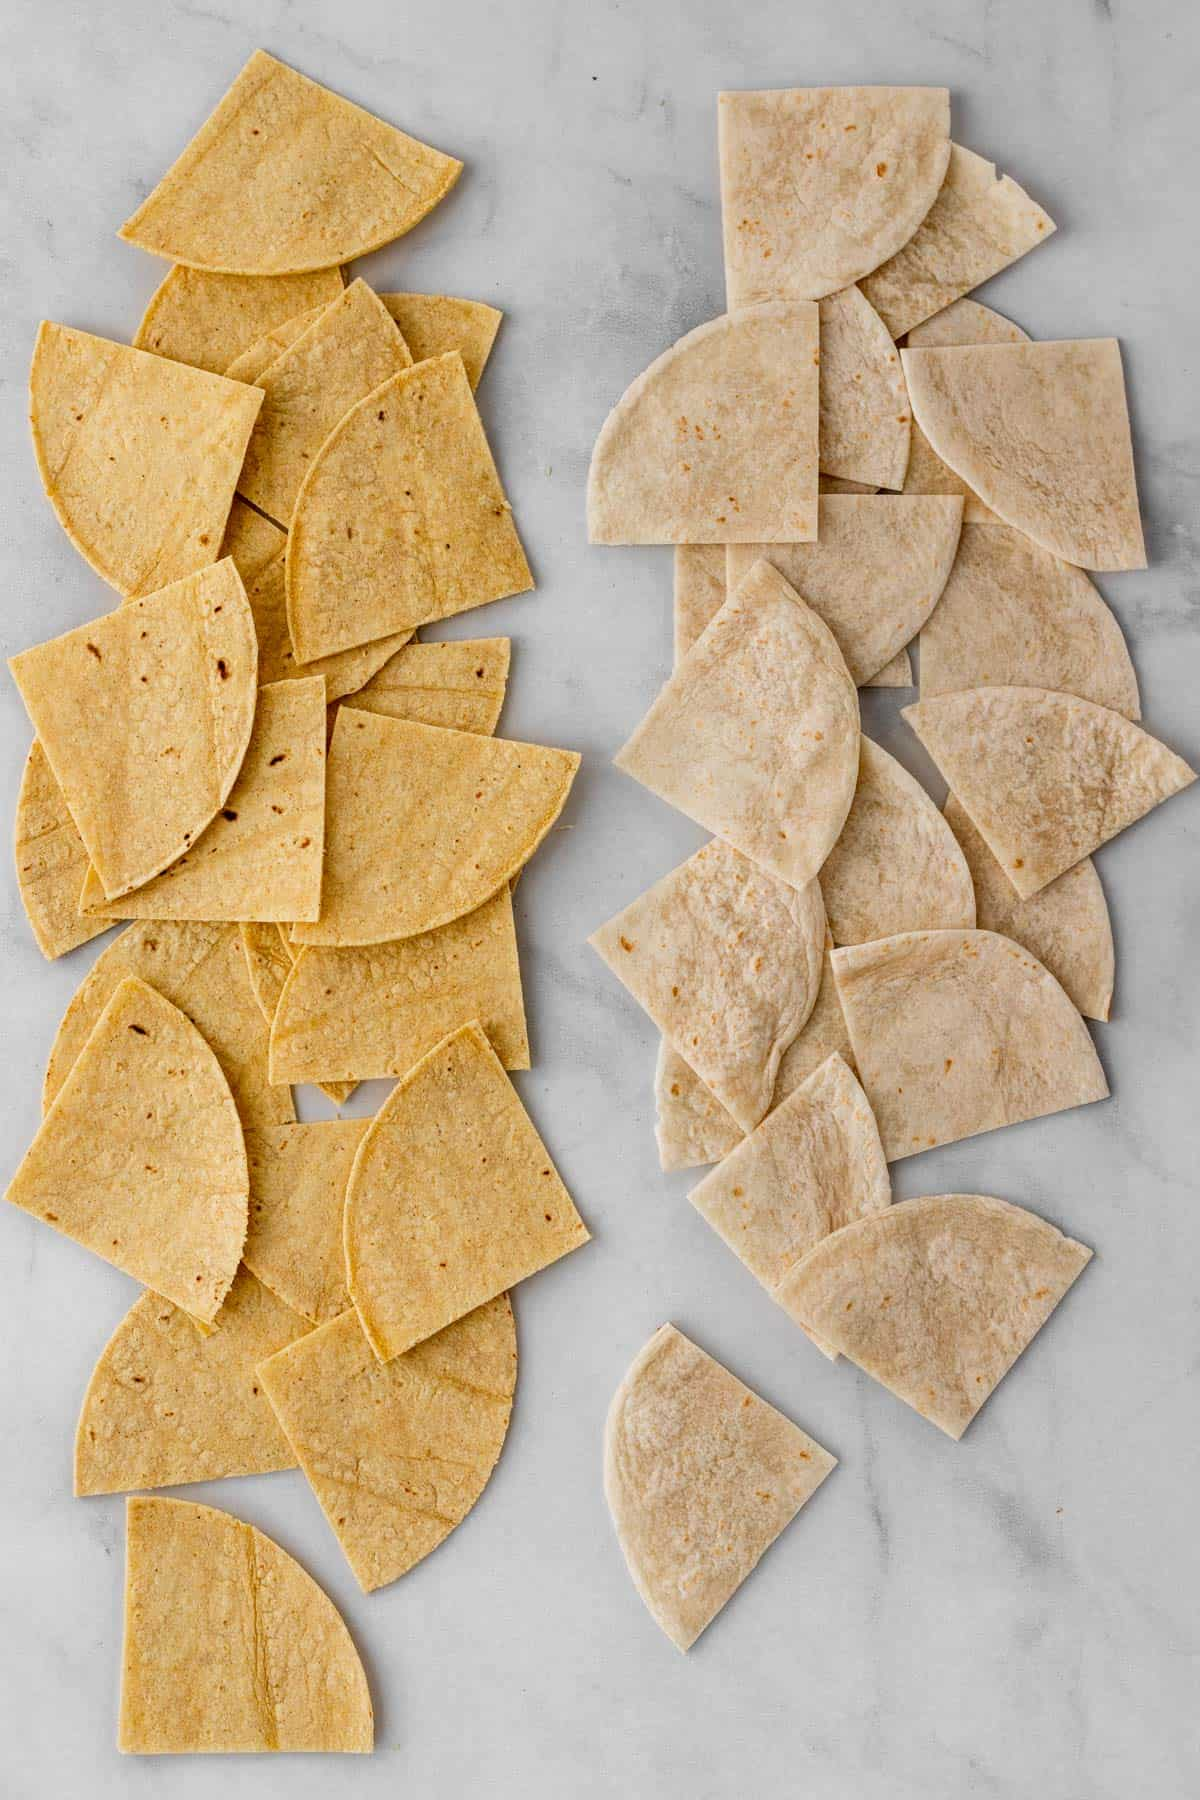 Flour and corn tortillas cut into triangles and lined up on a white background.